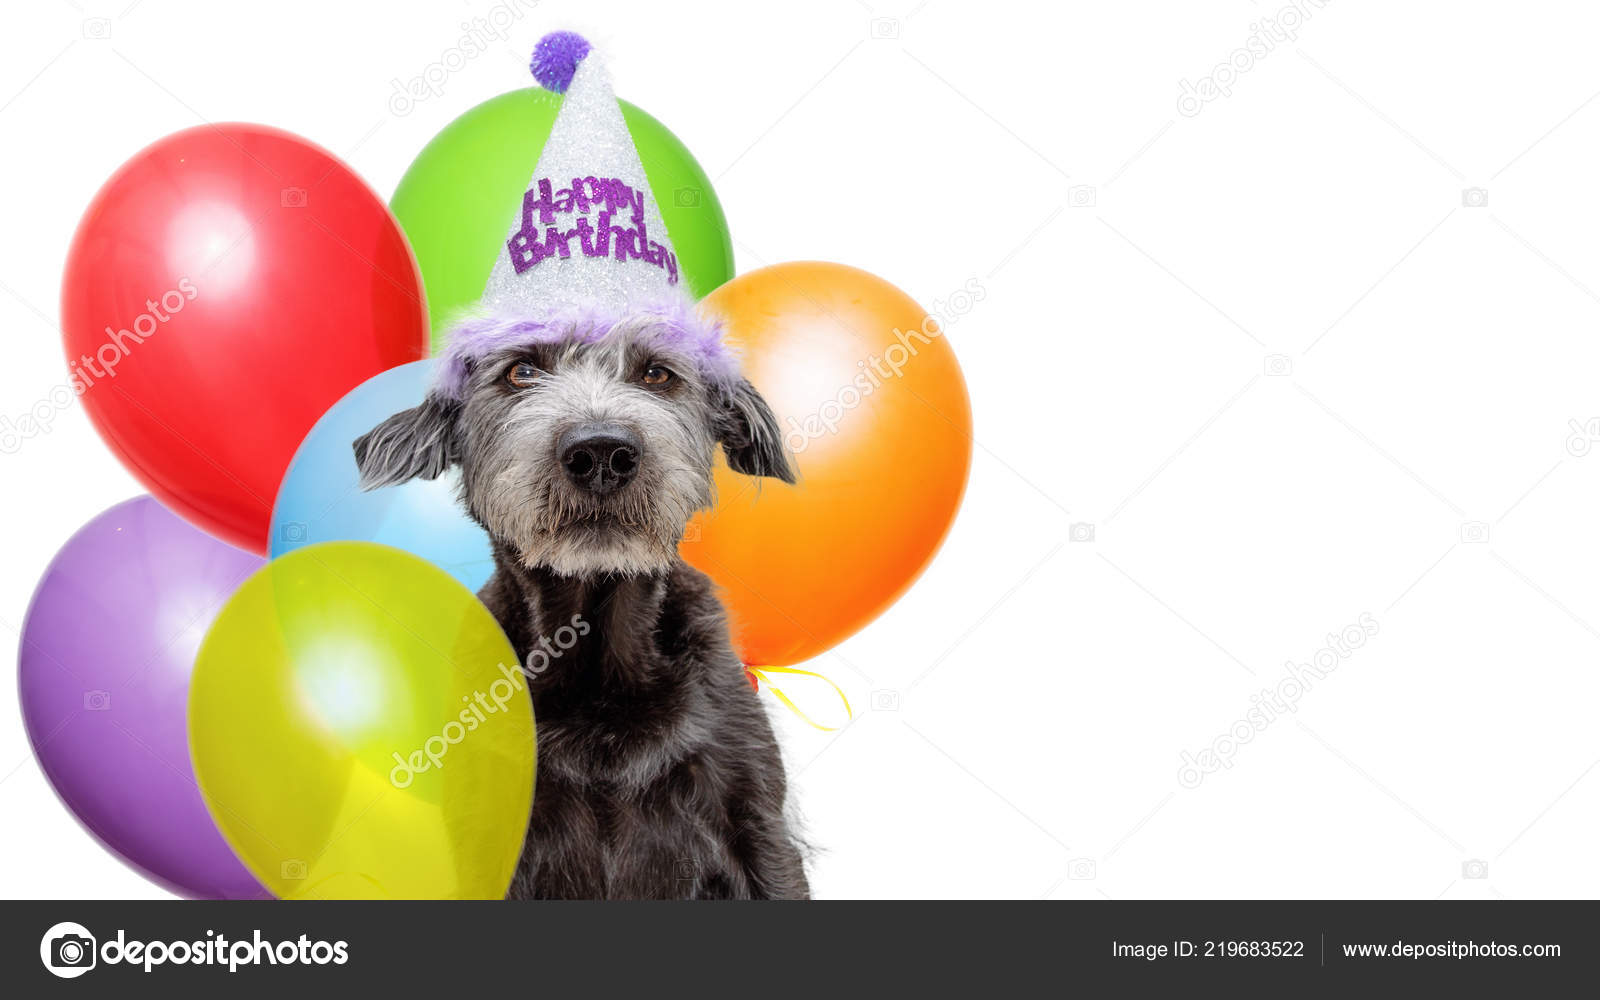 Funny Scruffy Dog Wearing Happy Birthday Party Hat Bouquet Colorful Stock Photo